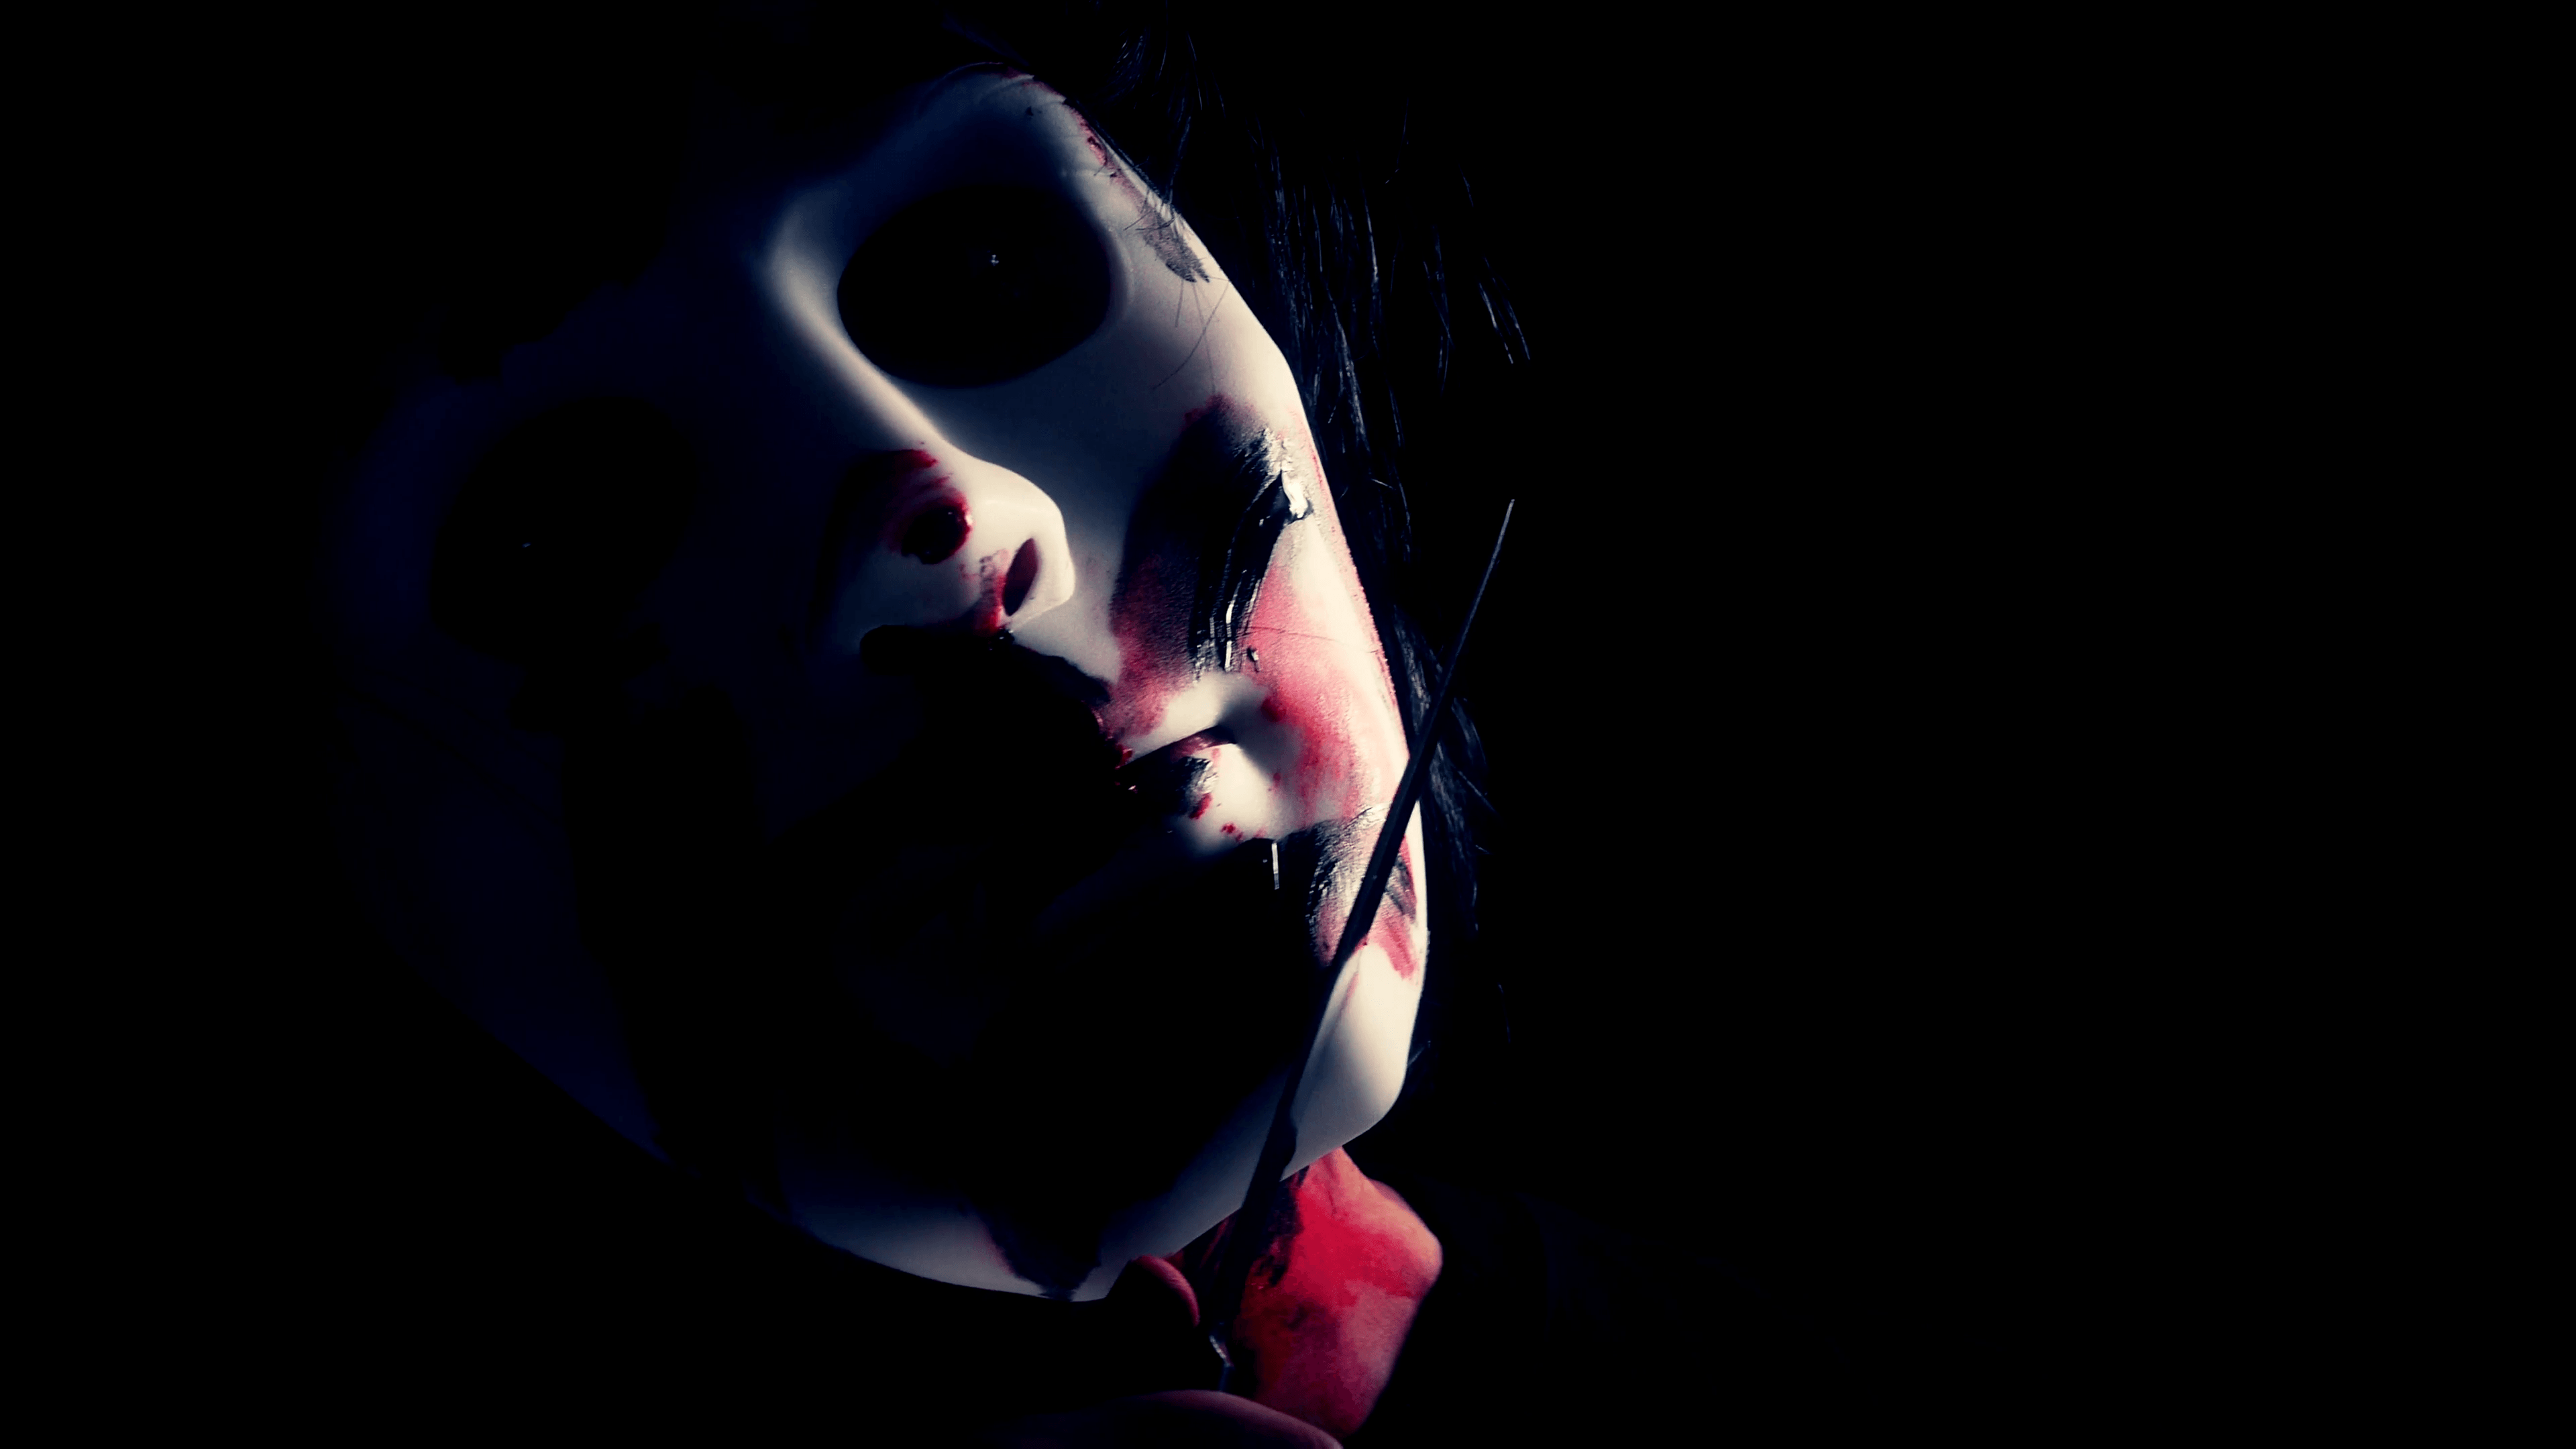 The bloody mask